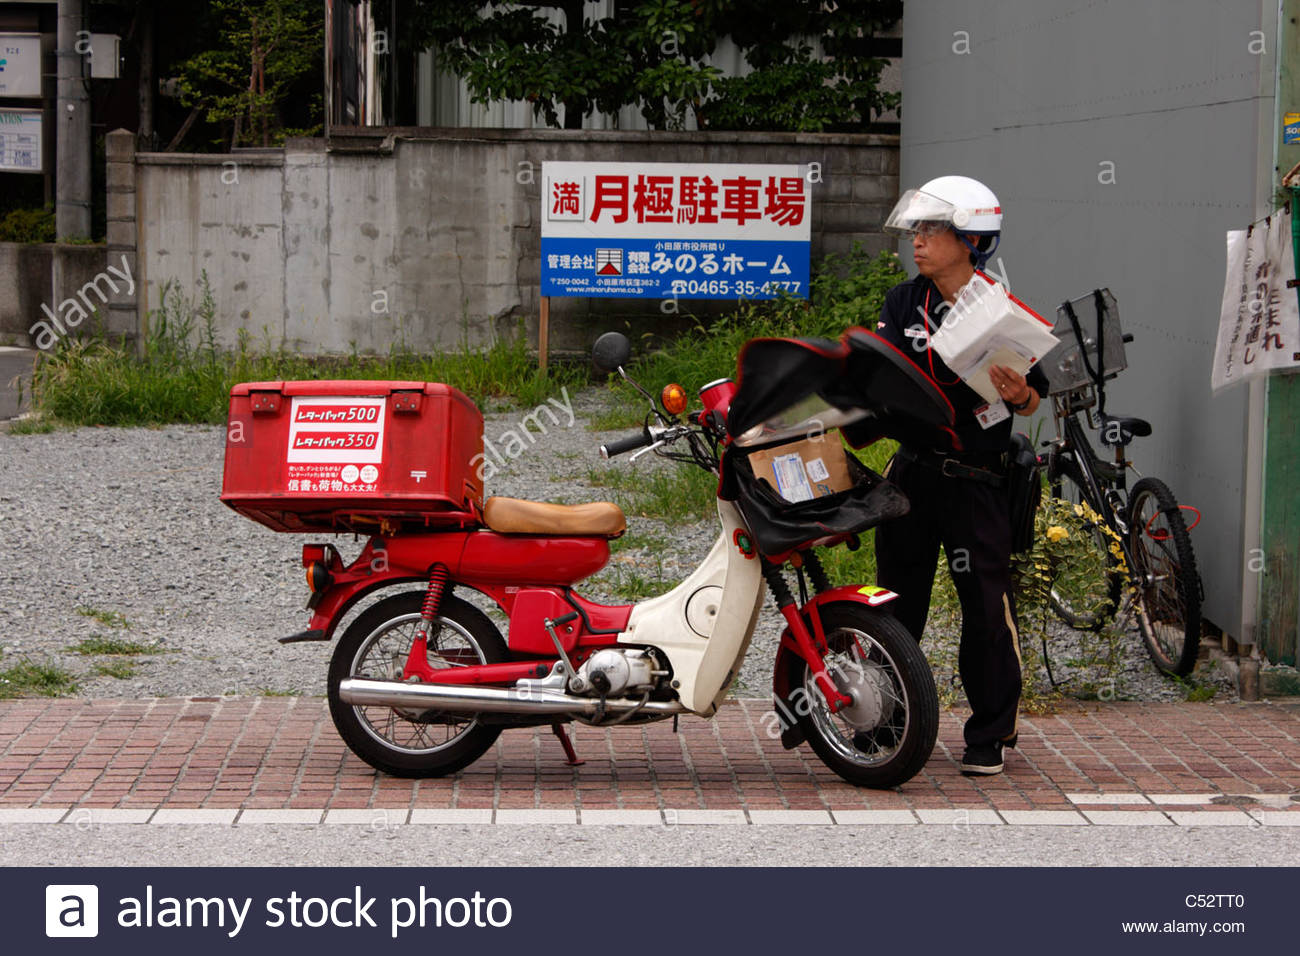 Postman sorting his delivery, Odawara, Japan - Stock Image